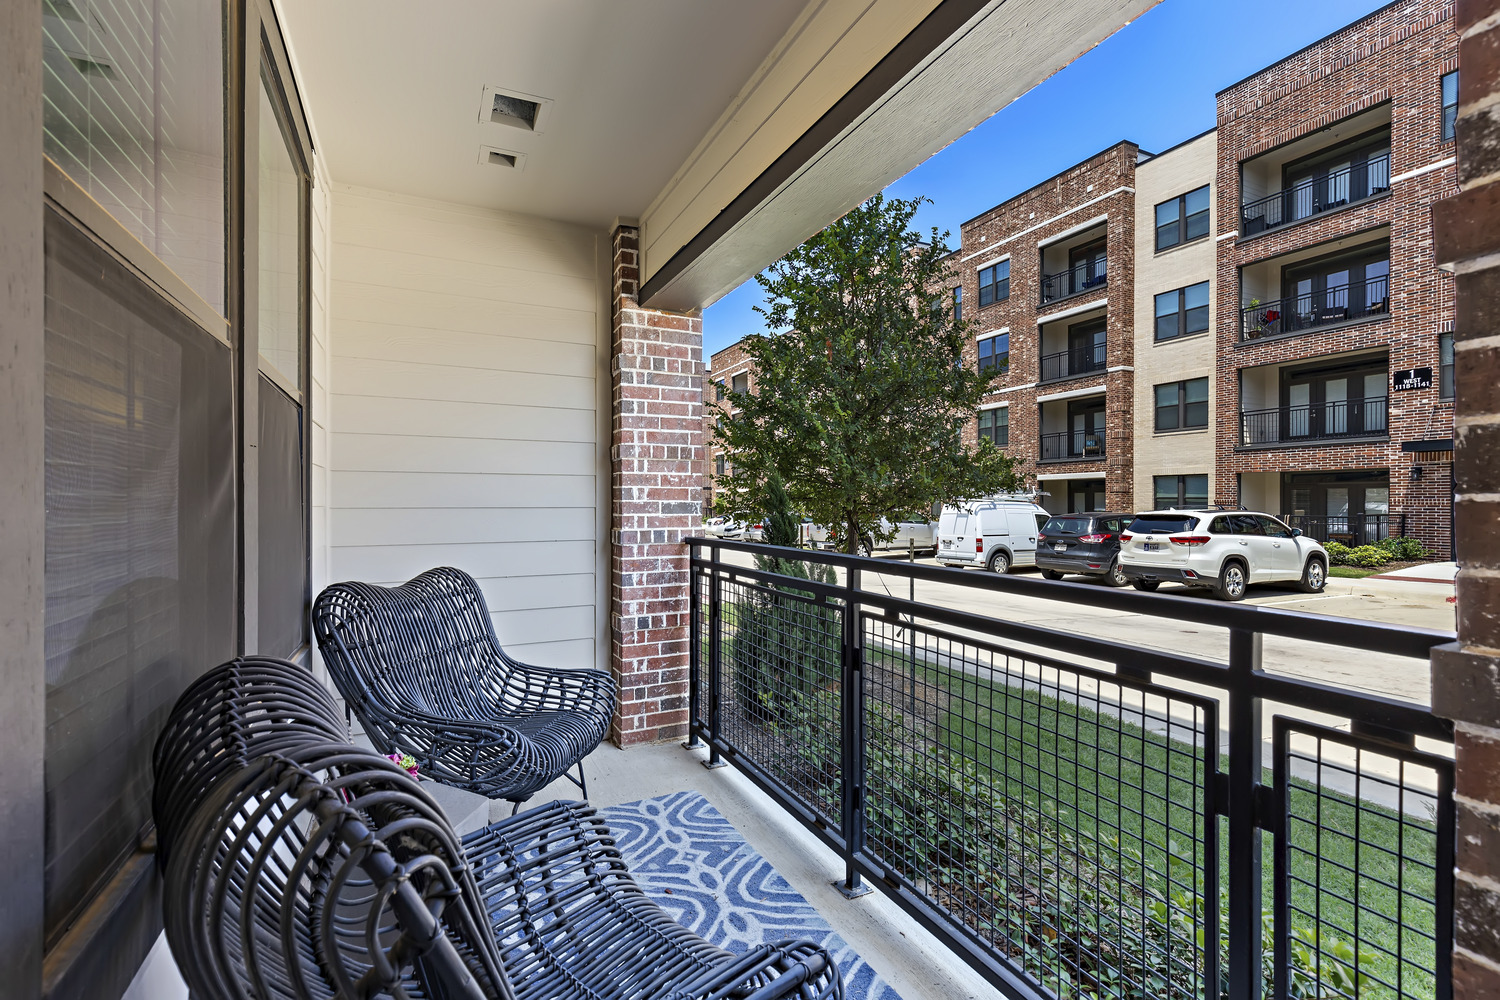 CBG builds Trinity Union, a Nine-Building Apartment Community with Amenities and Precast Parking in Euless, TX - Image #12